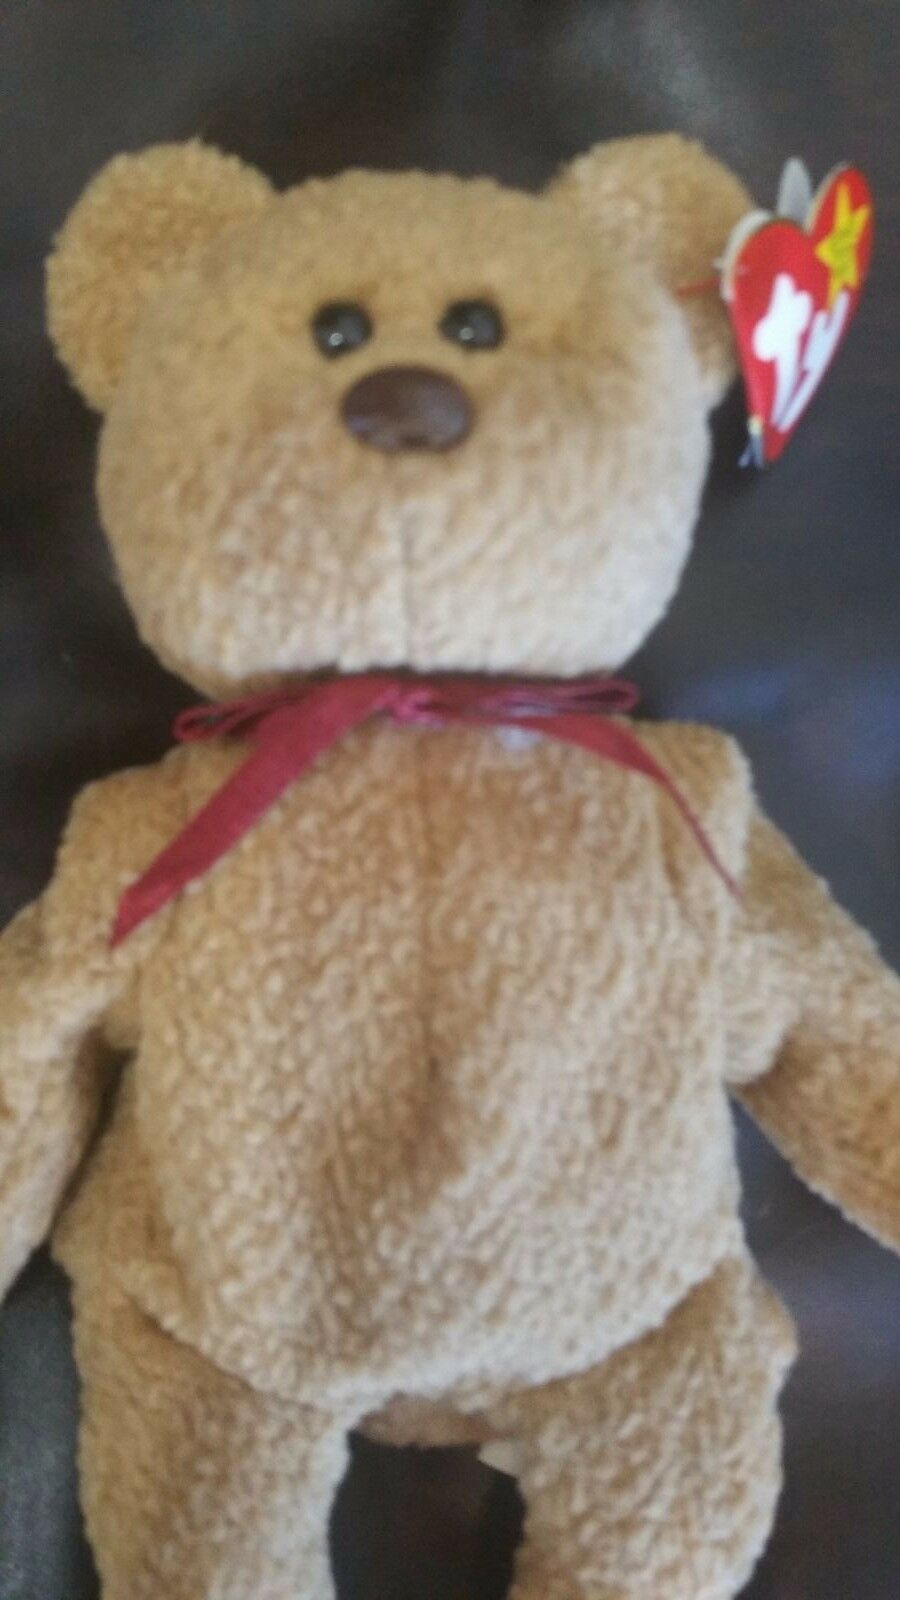 Curly Beanie Baby 1993 Tush Tag 1996 swing tag Other Errors